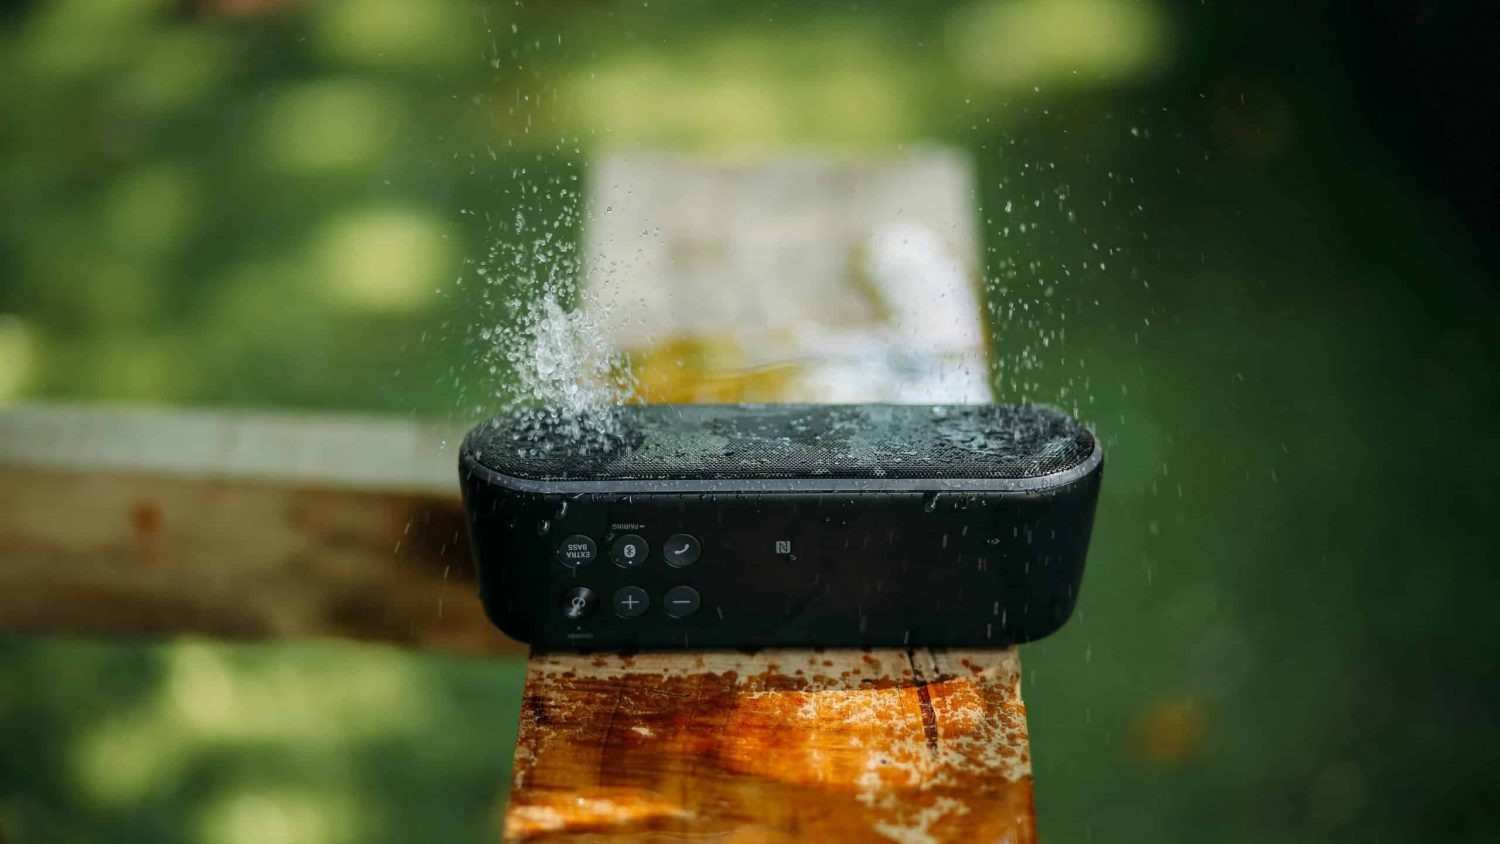 7 Best Waterproof Speakers 2021 – Bring the Party Outside Without Any Worries